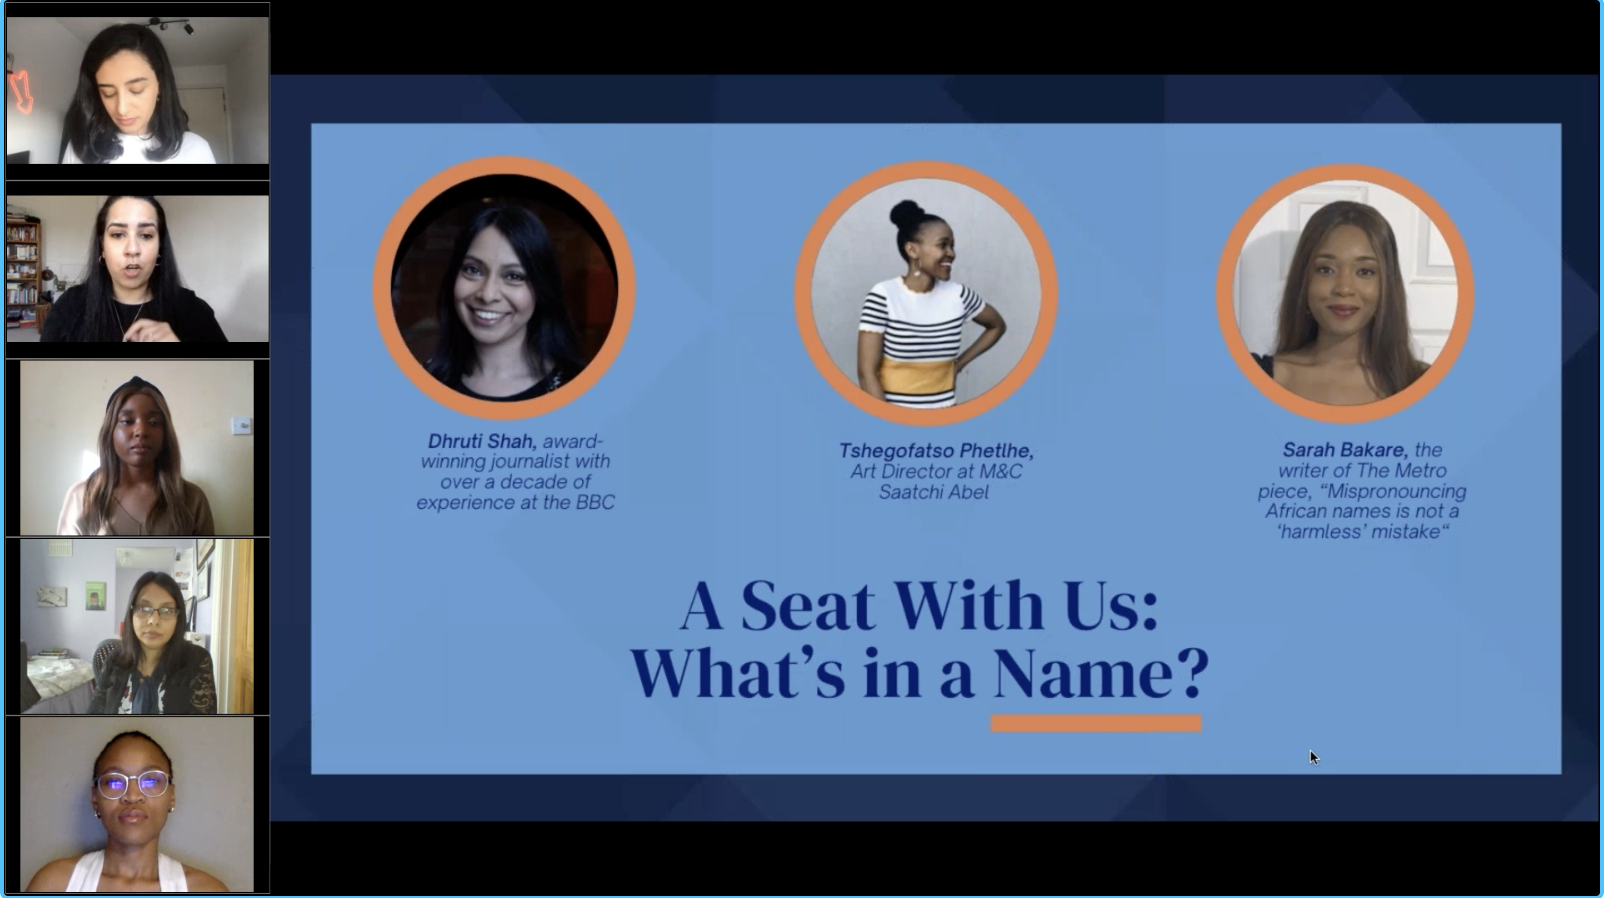 A Seat With Us: What's in a Name?